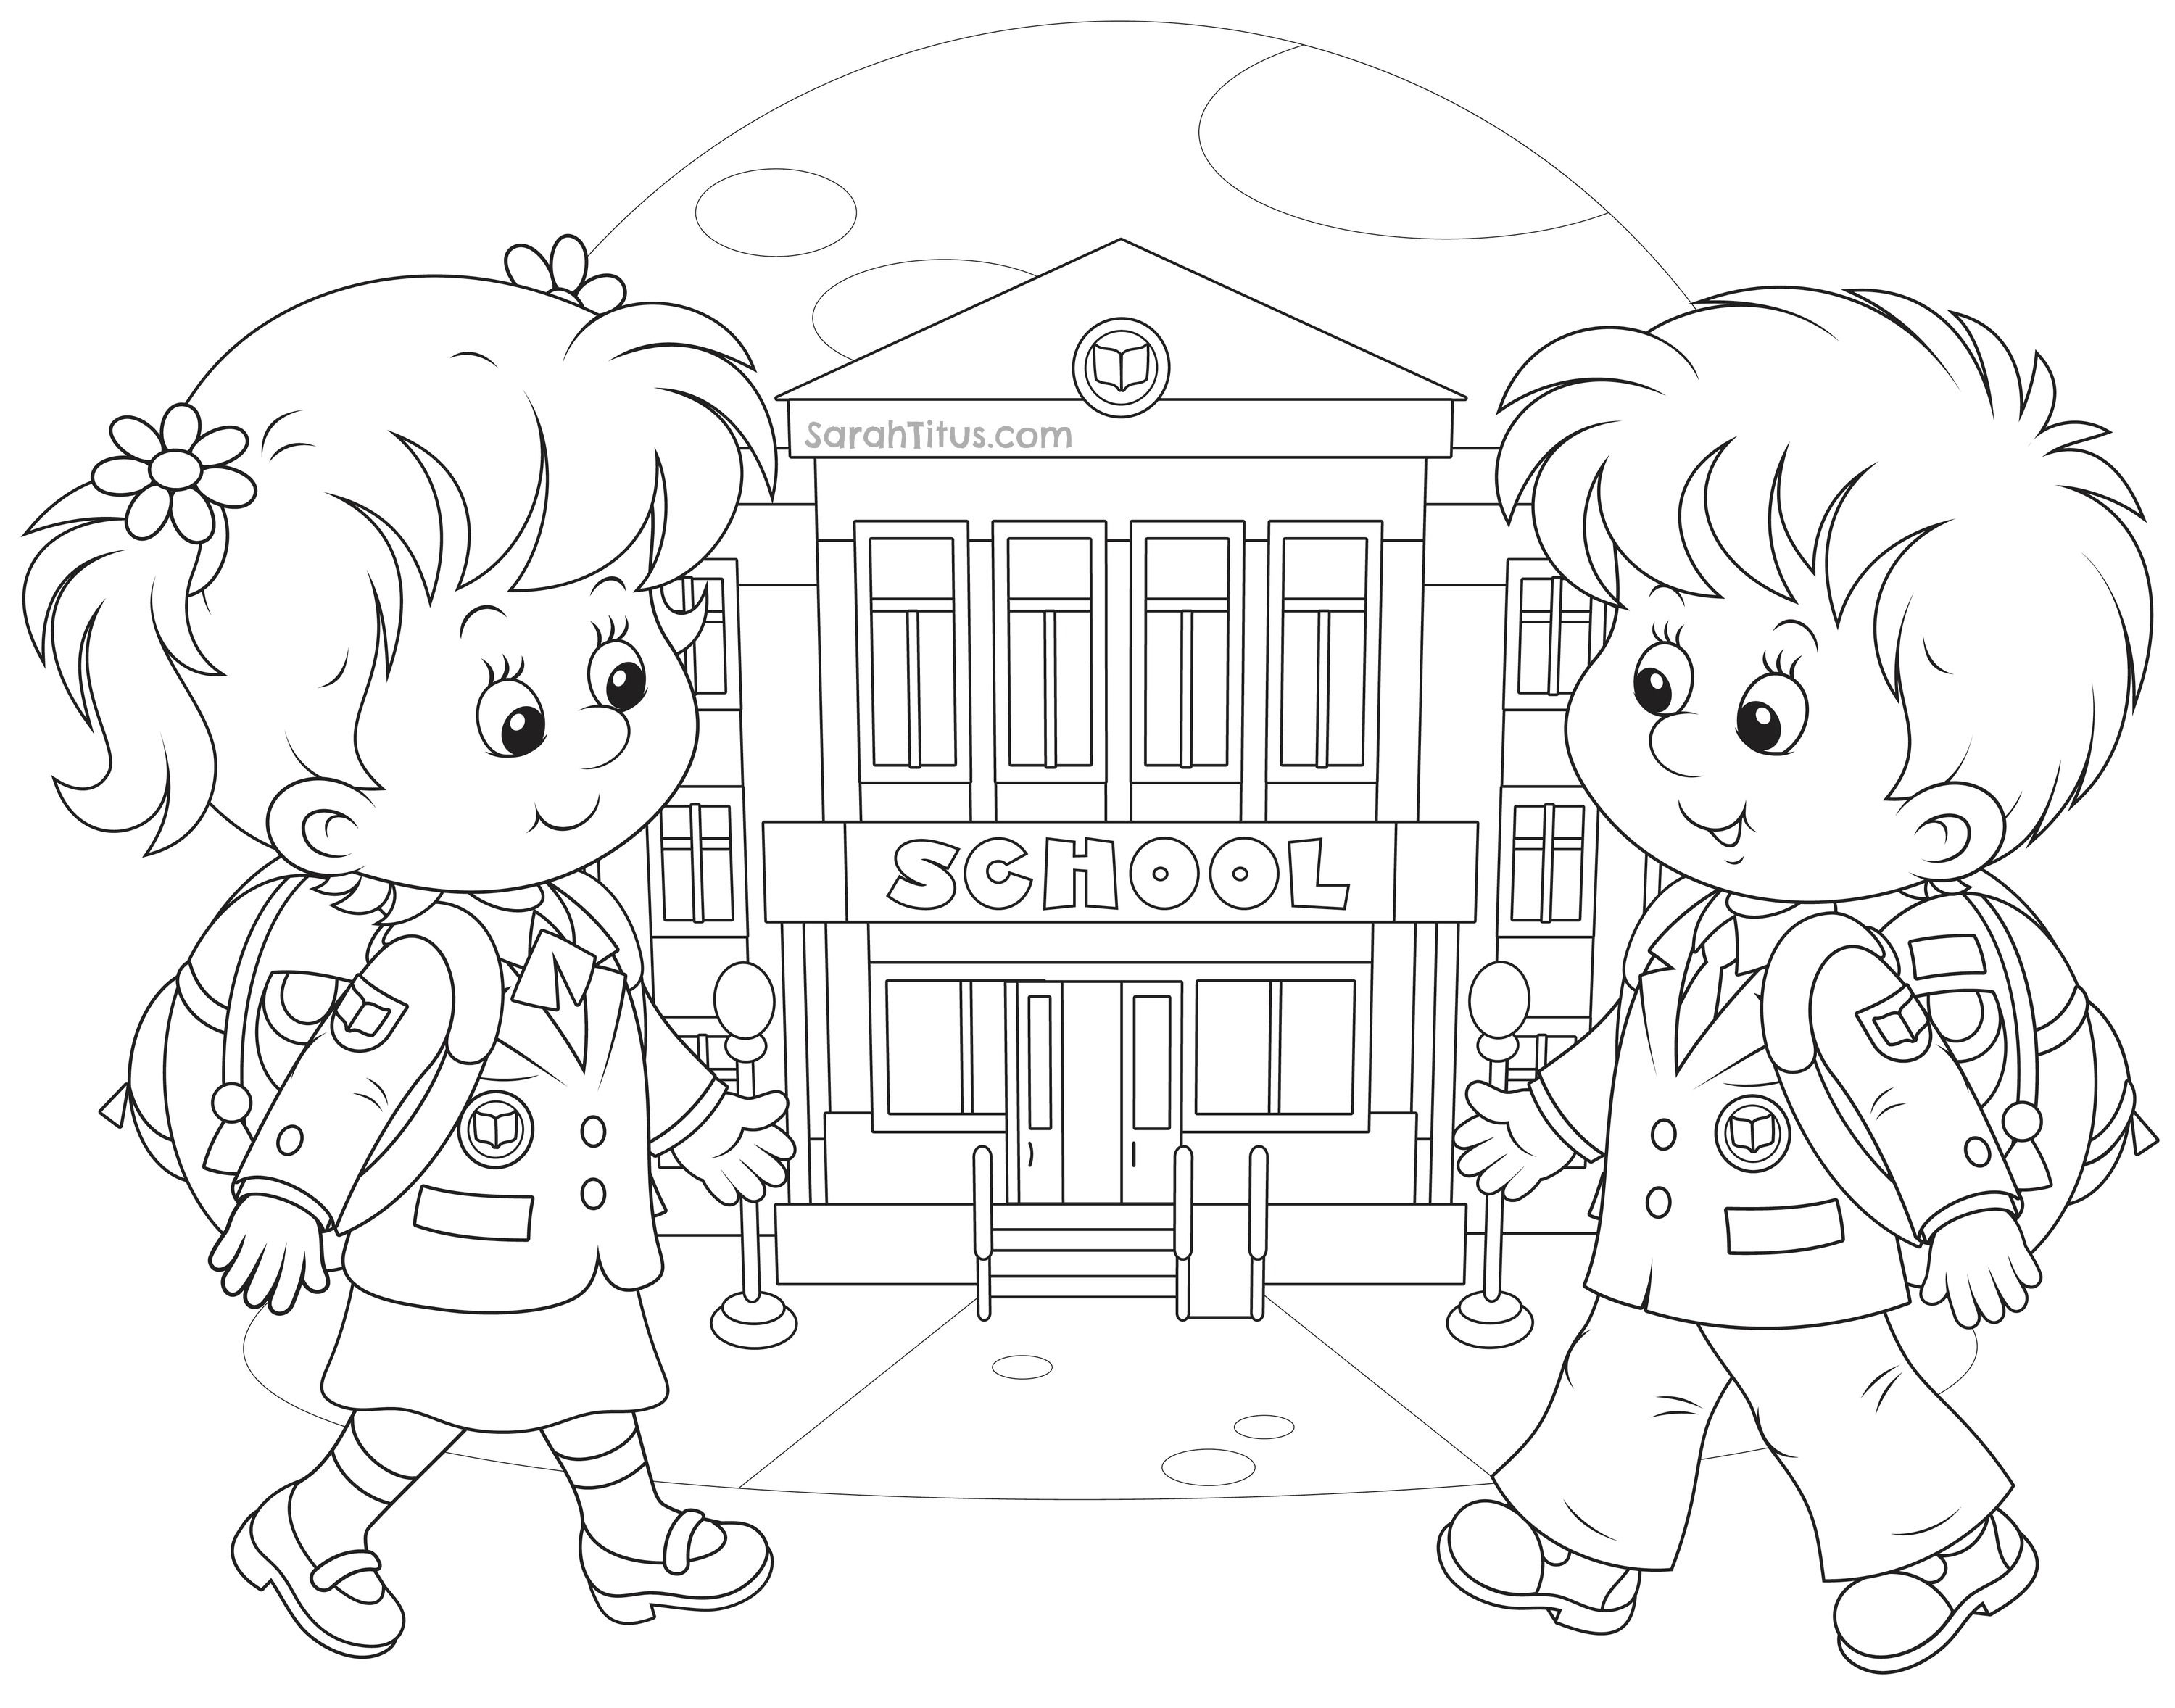 Coloring pages for back to school - Back To School Coloring Pages